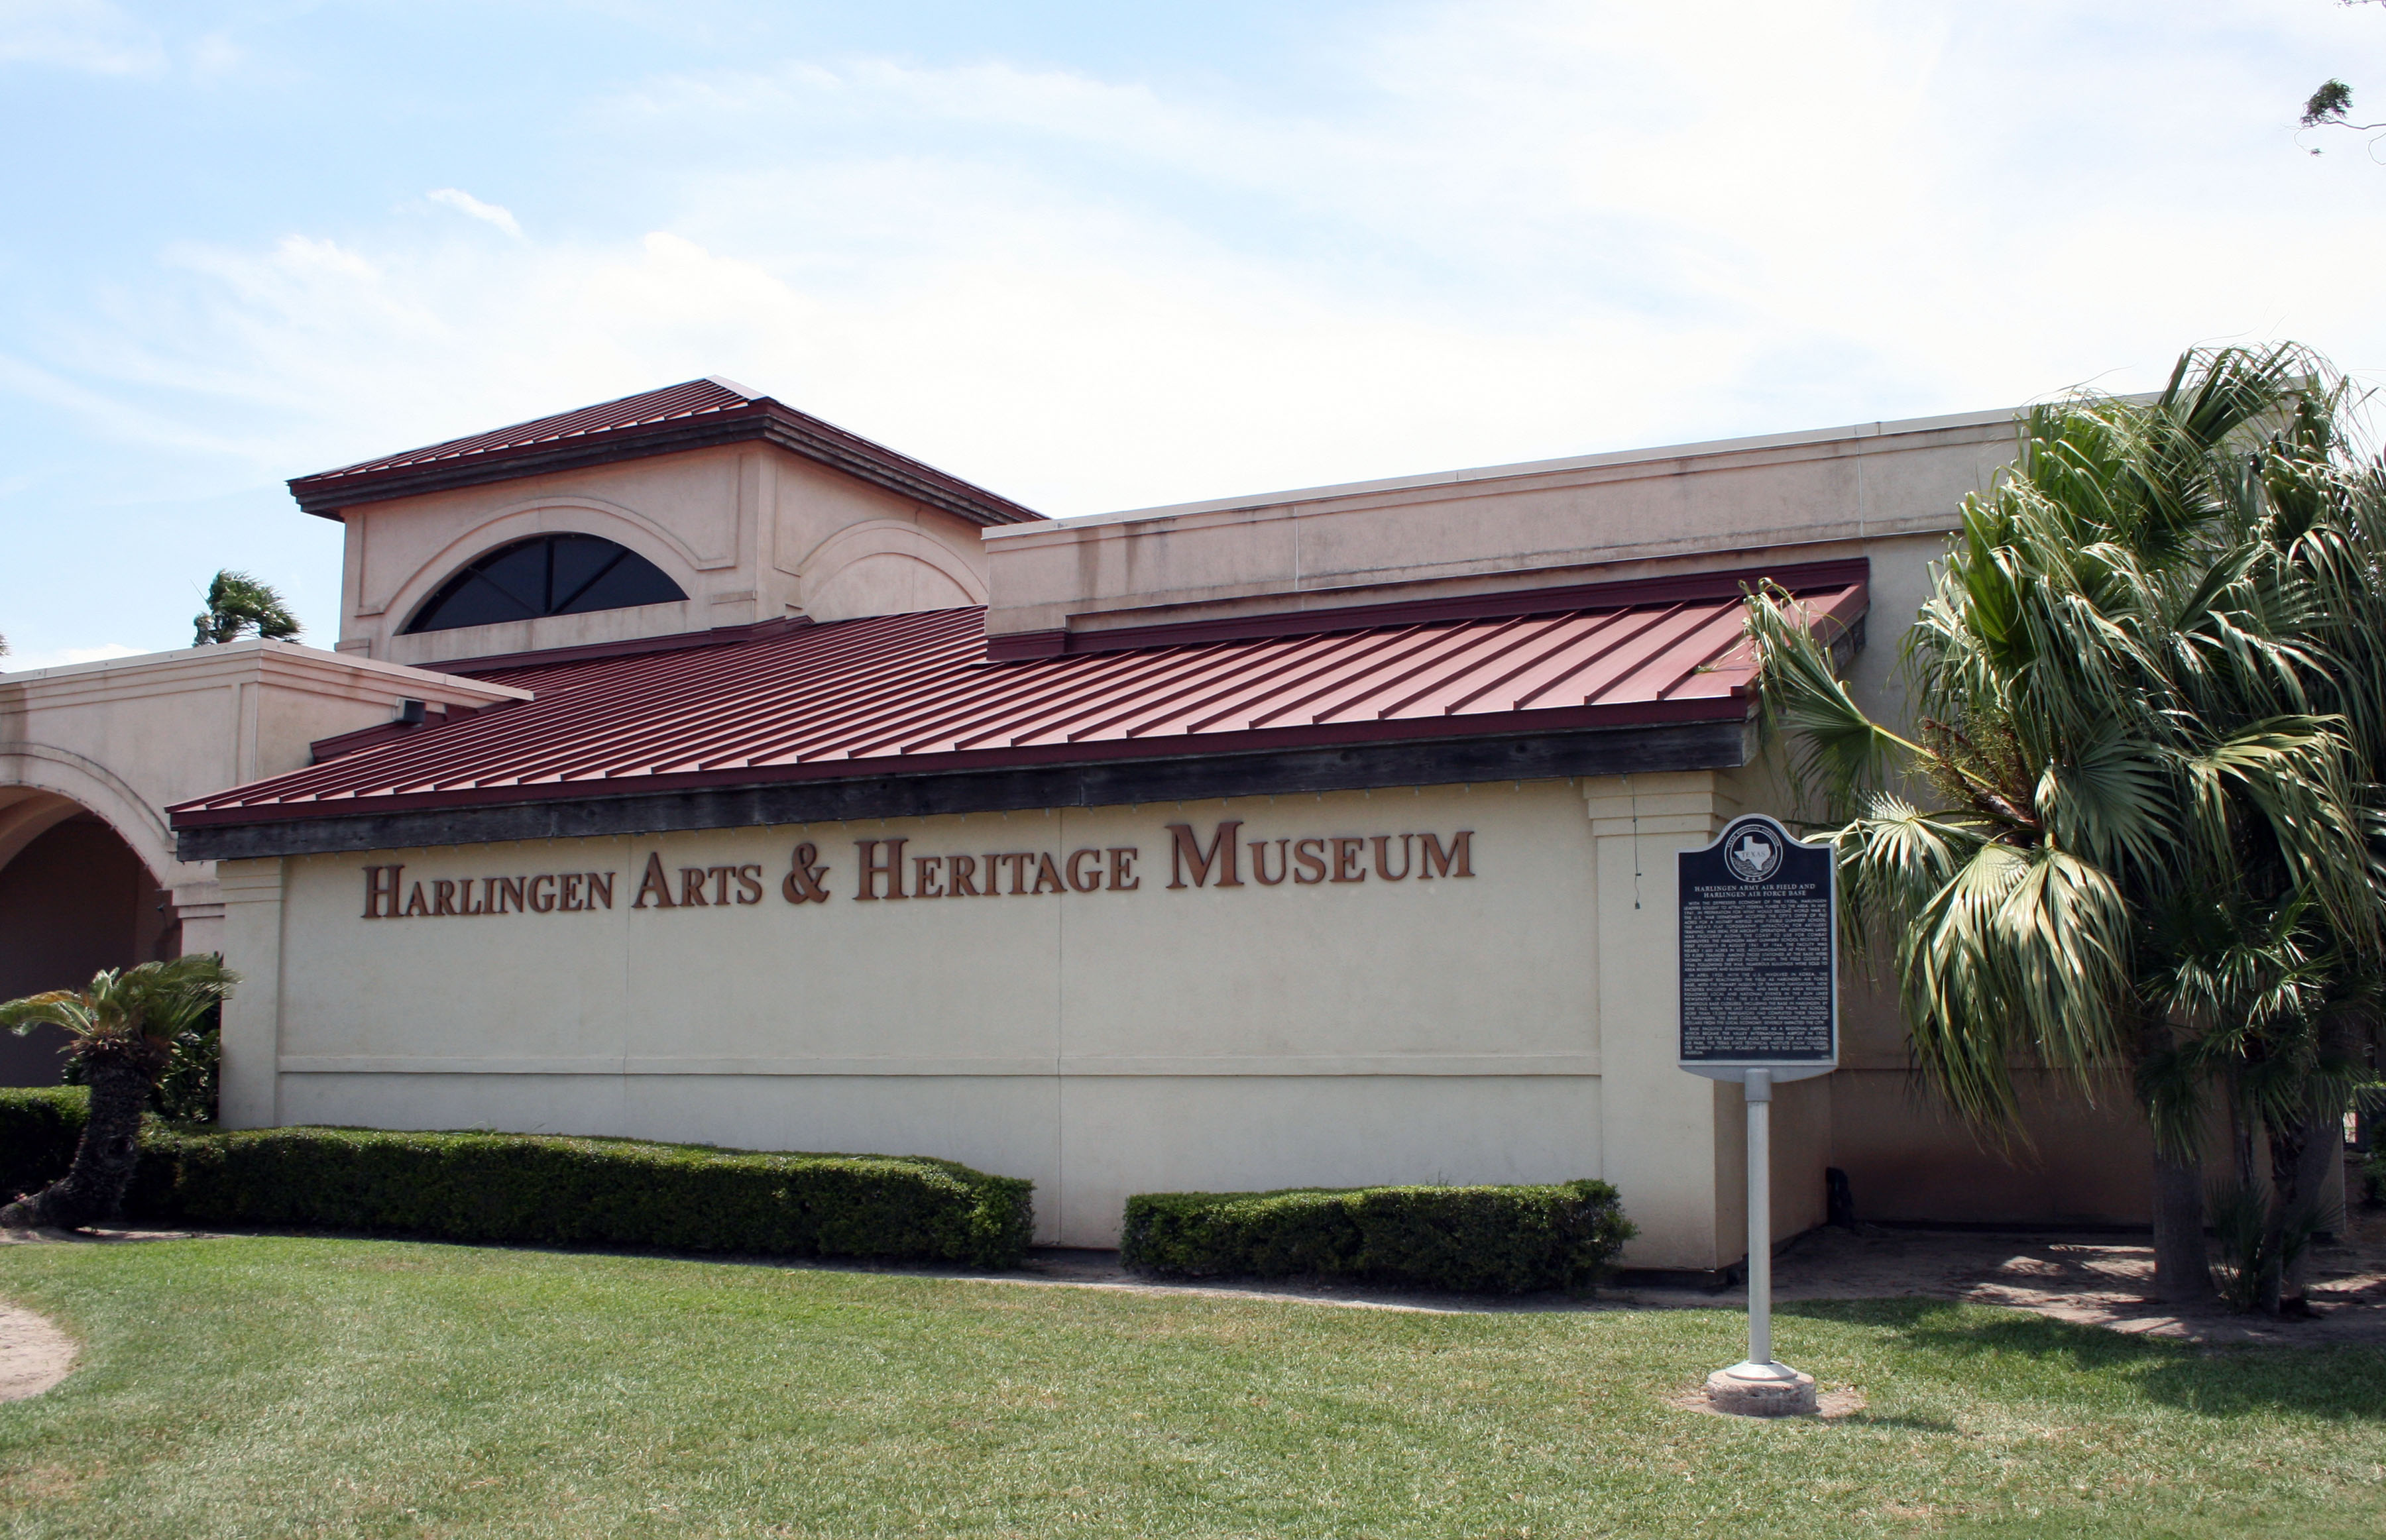 The Harlingen Arts and Heritage Museum